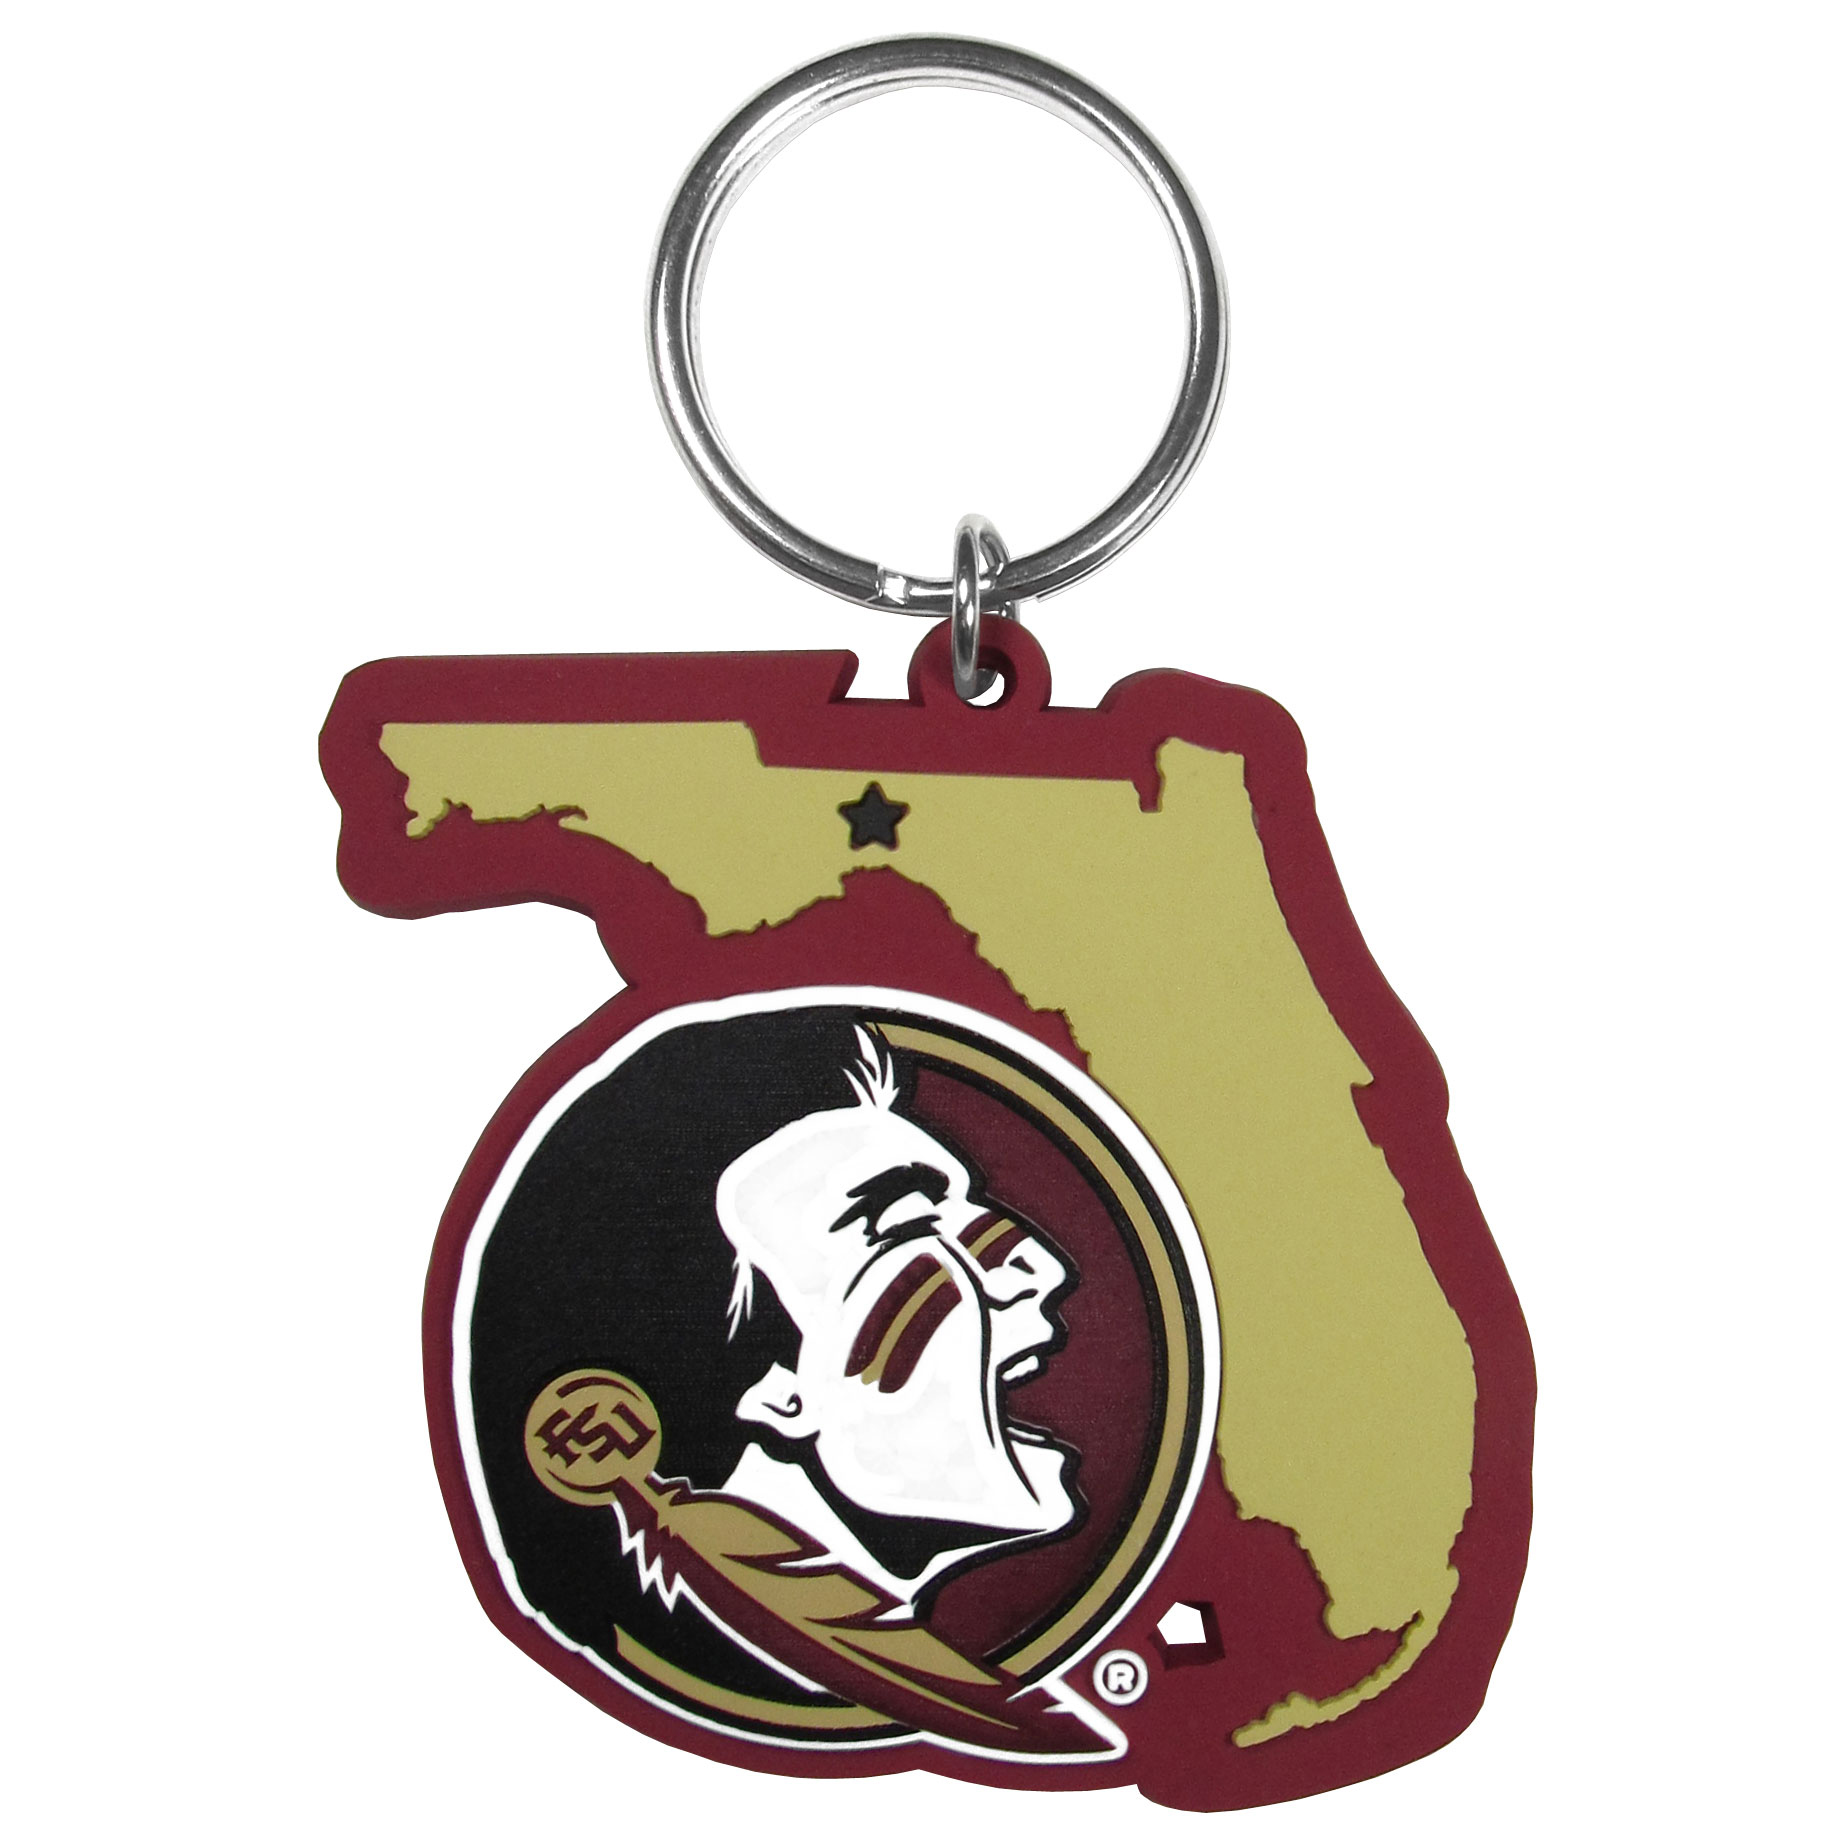 Florida St. Seminoles Home State Flexi Key Chain - Our flexible Florida St. Seminoles key chains are a fun way to carry your team with you. The pliable rubber material is extremely durable and the layered colors add a great 3D look to the key chain. This is really where quality and a great price meet to create a true fan favorite.